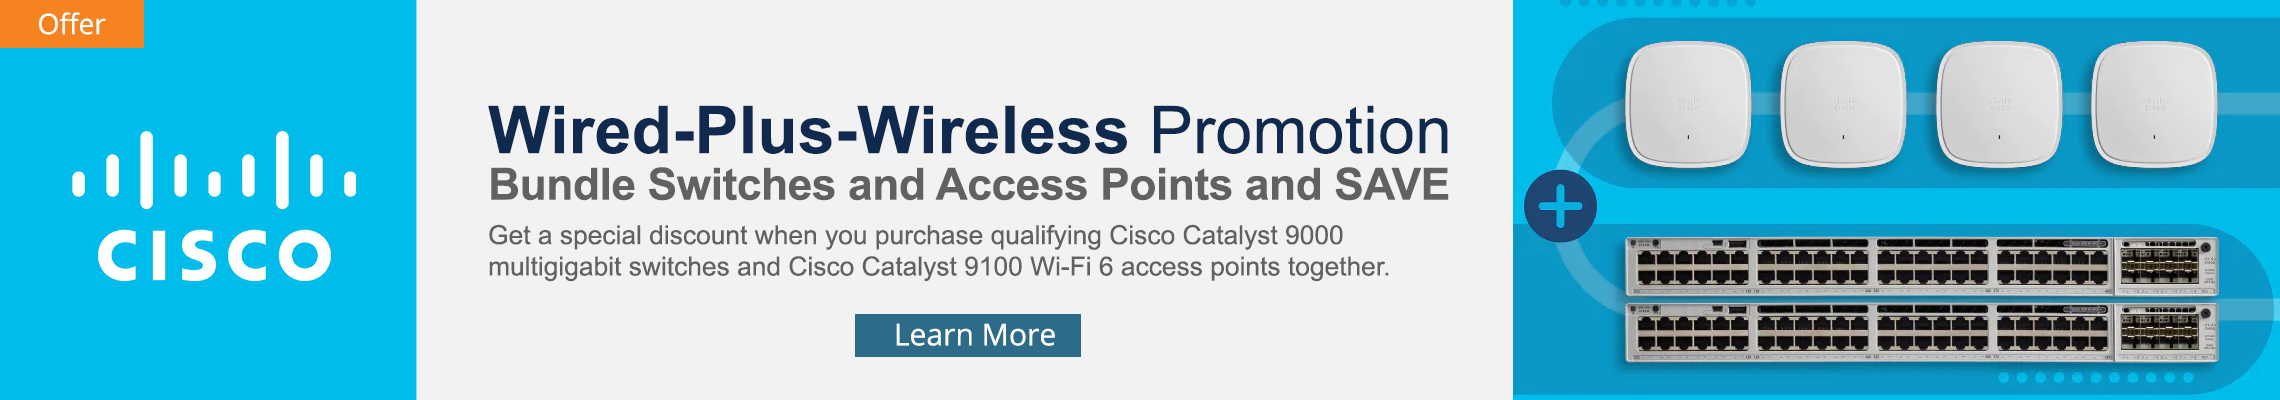 Cisco Wired+Wireless Home Banner